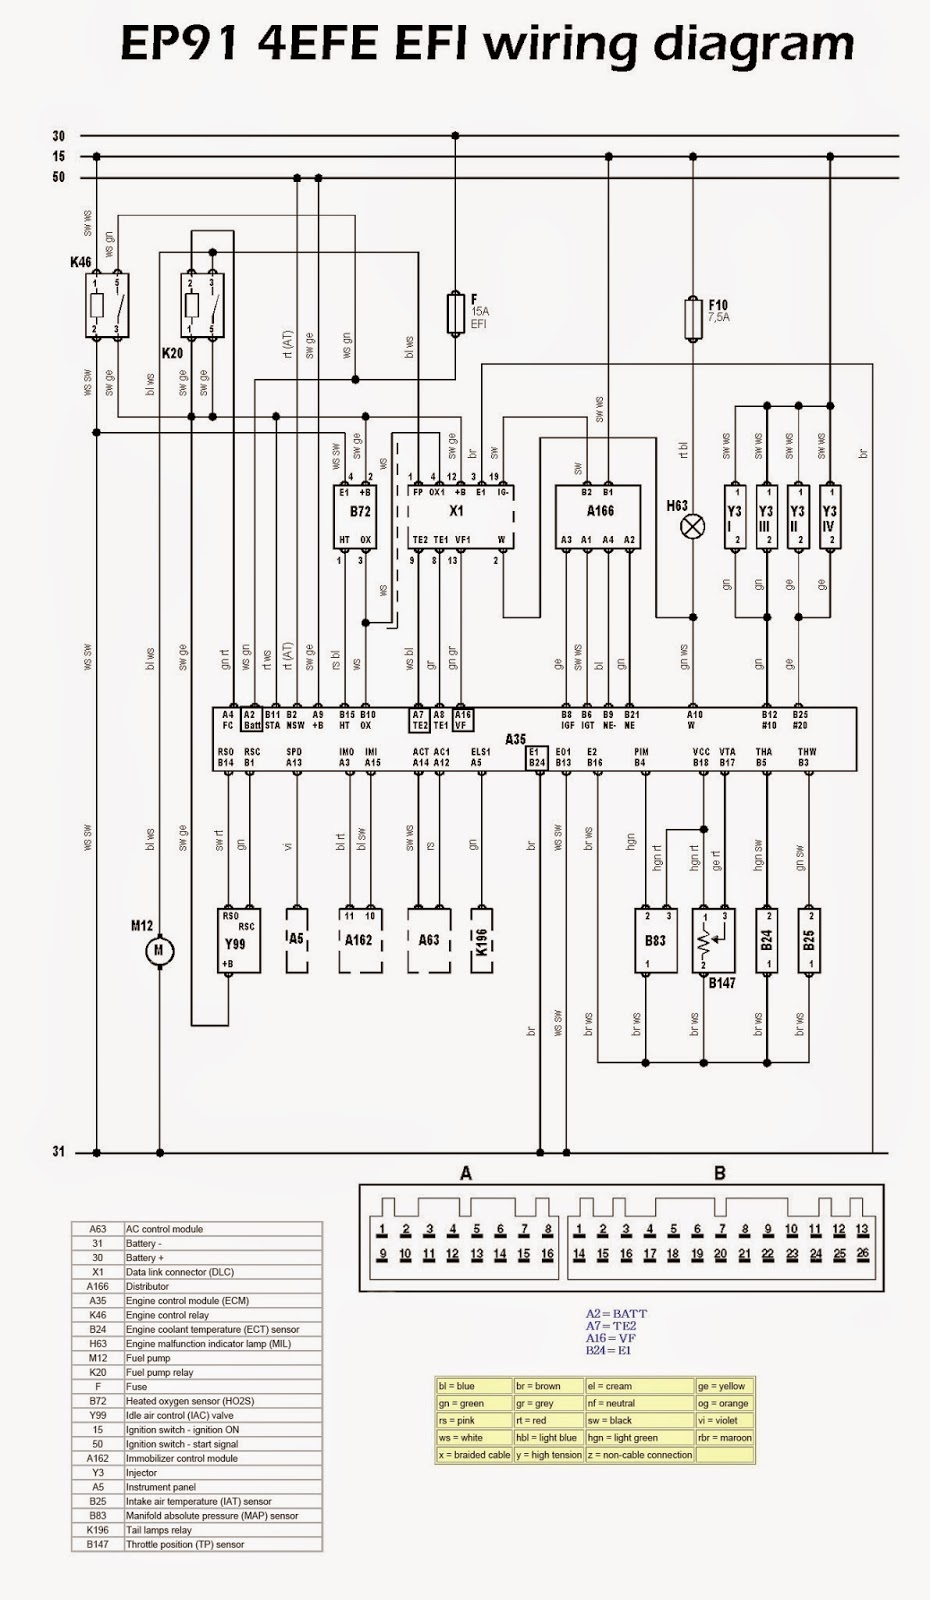 Er Shell Light Wiring Diagrams On Chevy M1008 Wiring Diagram